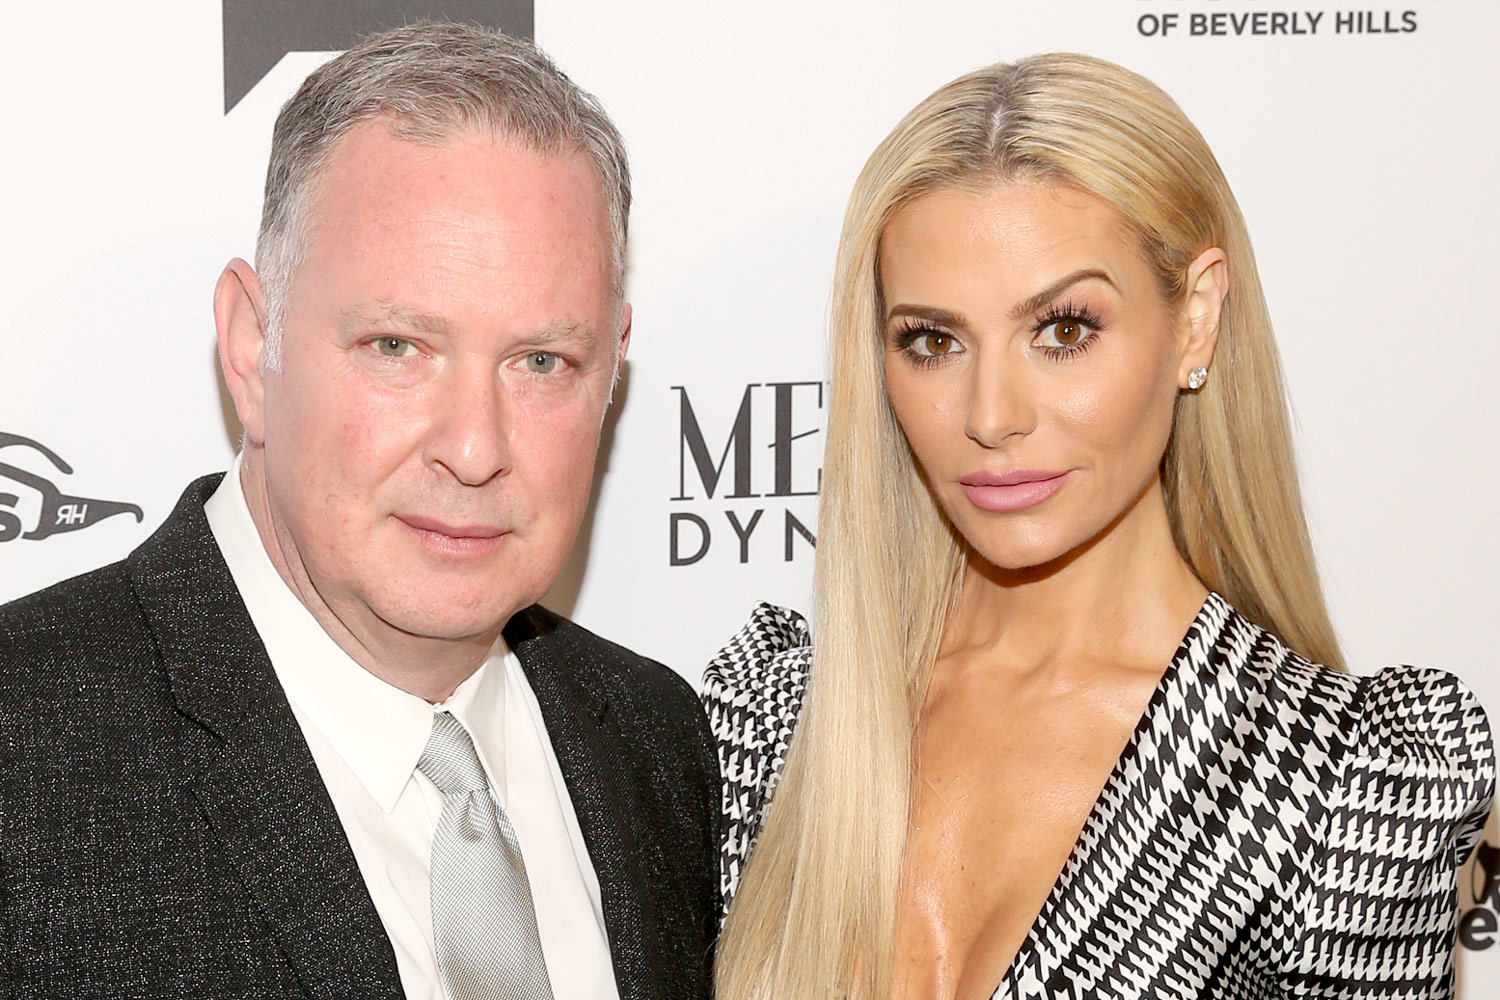 Dorit Kemsley con inteligente, Marido Paul Kemsley